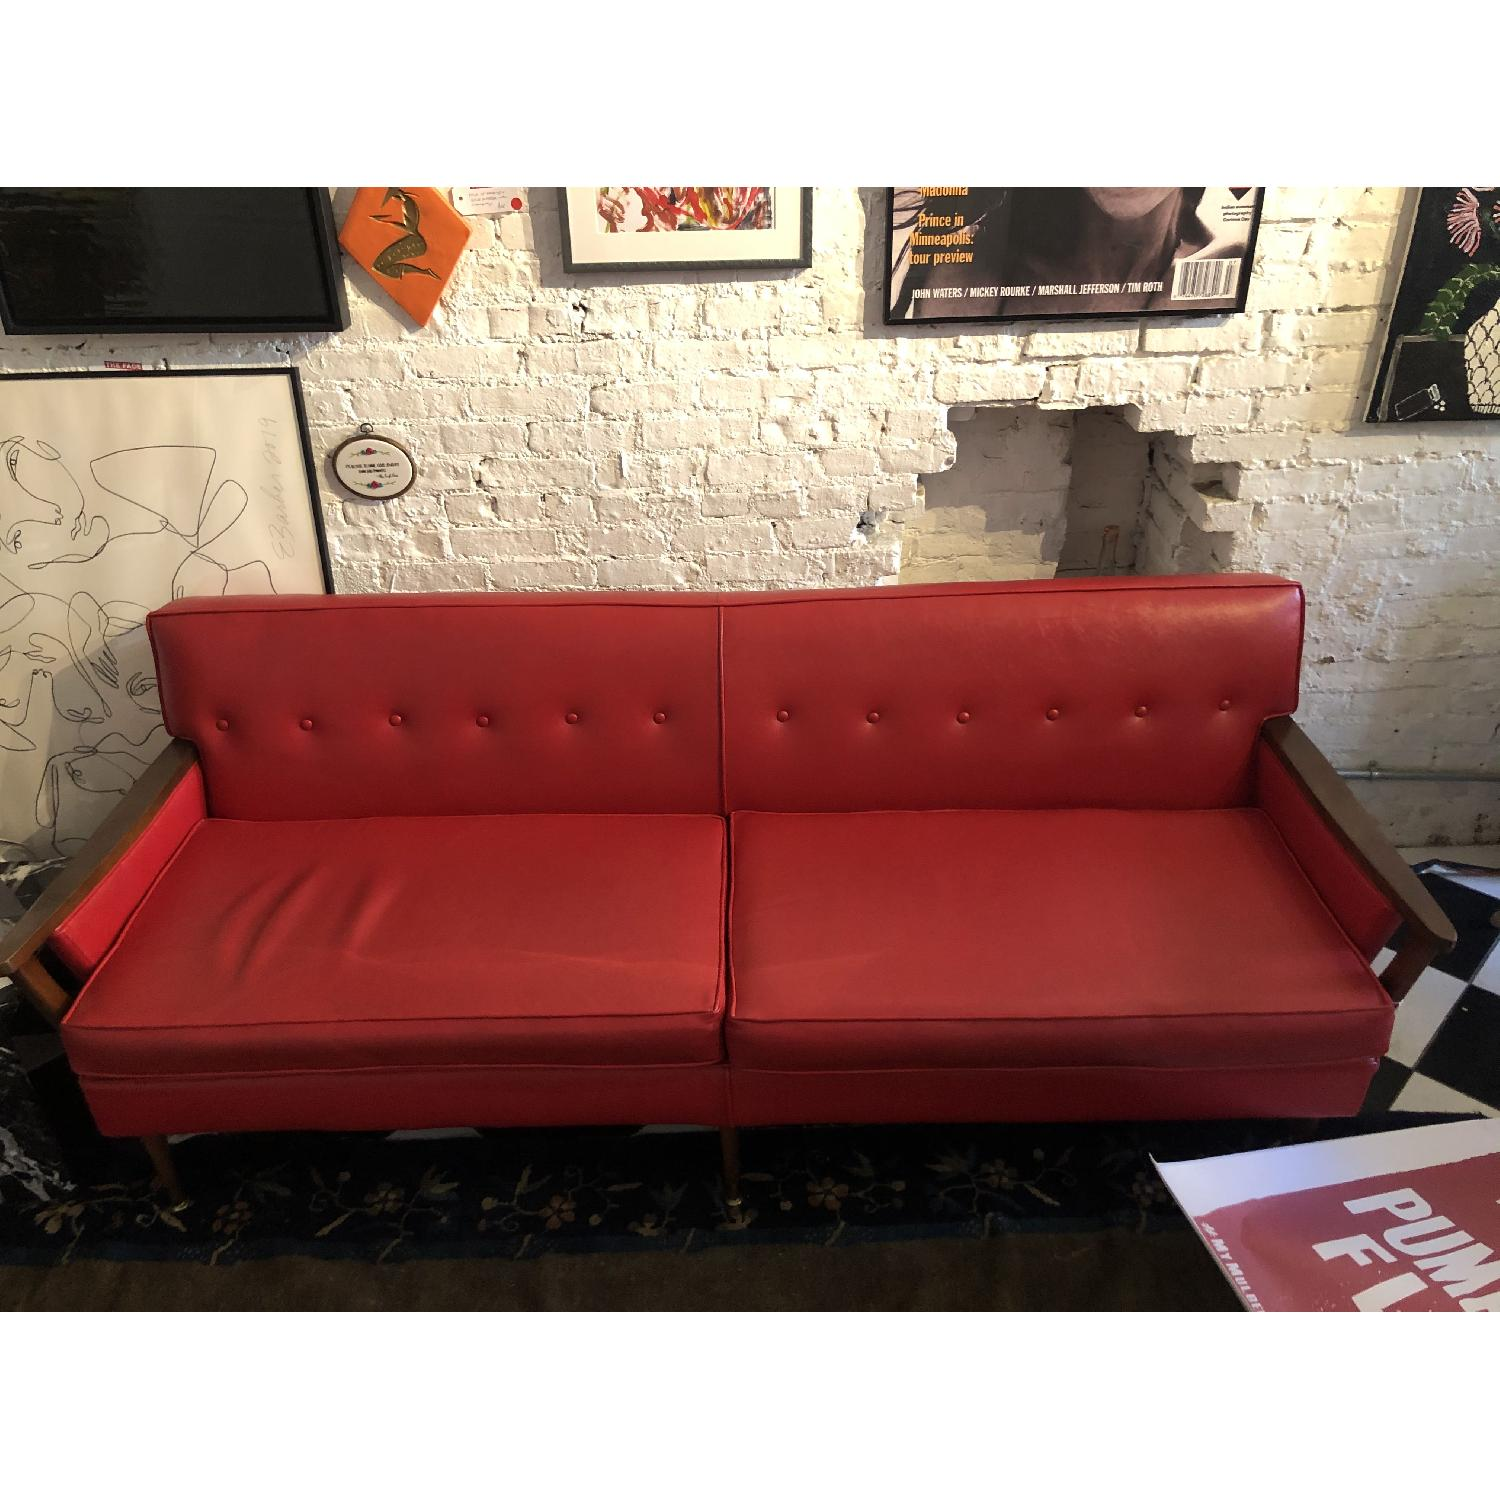 Vintage Red Leather Sofa - image-2